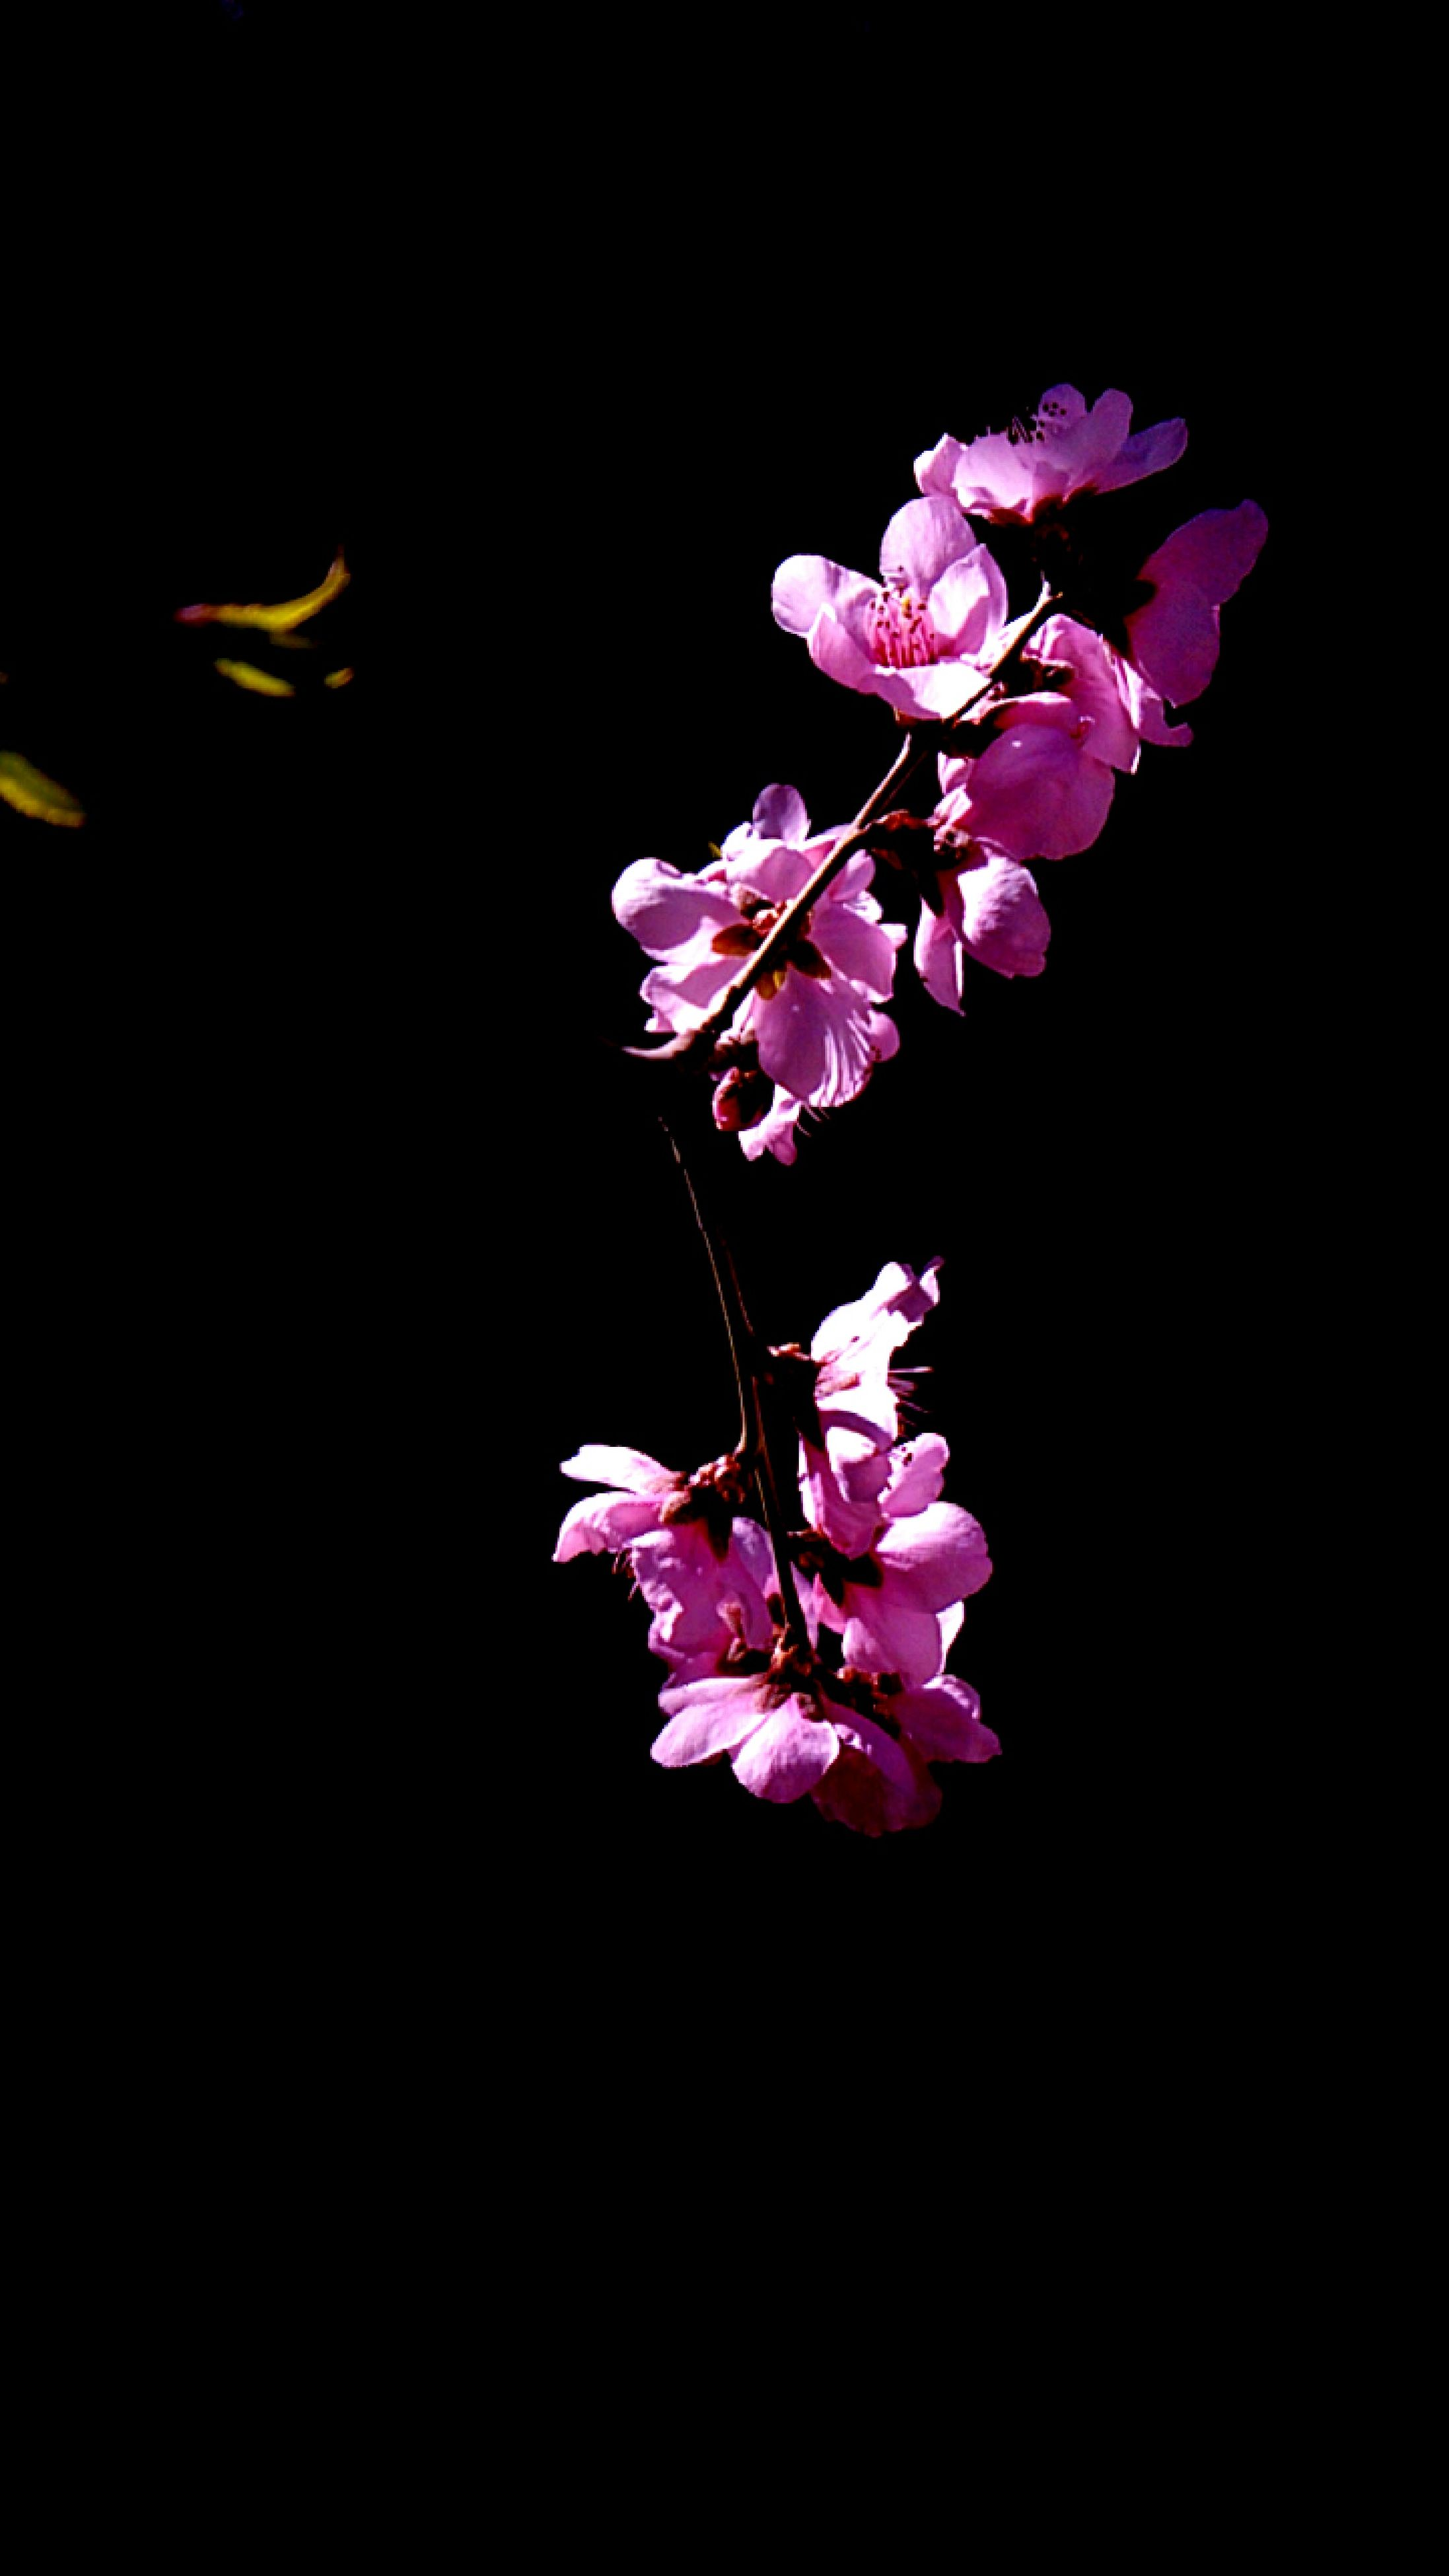 flower, freshness, fragility, petal, studio shot, growth, beauty in nature, pink color, copy space, black background, nature, flower head, close-up, blossom, night, in bloom, blooming, pink, stem, springtime